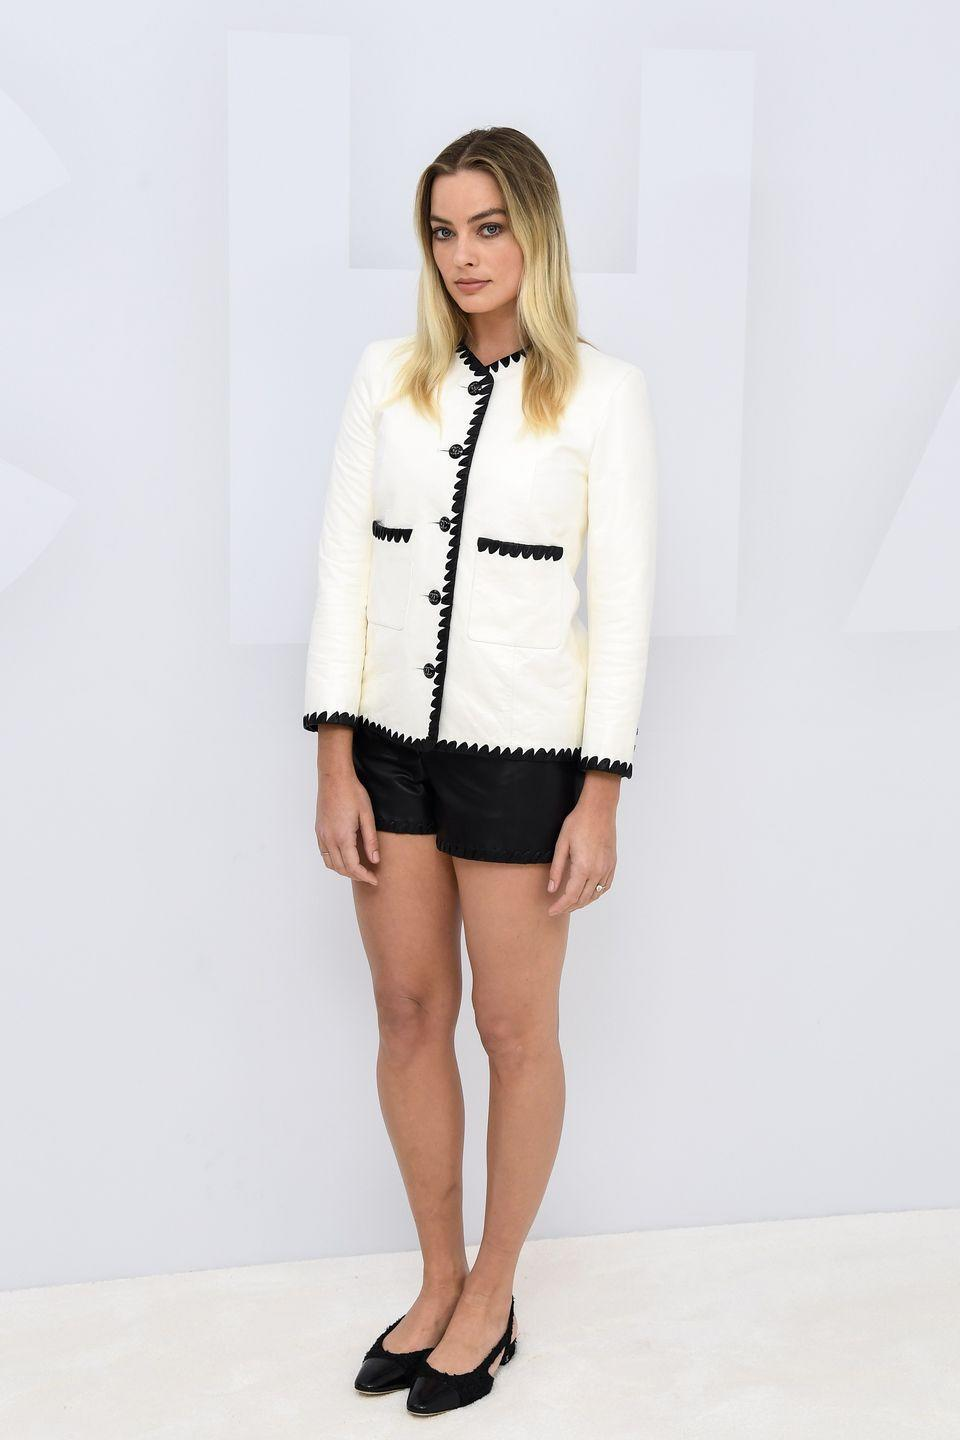 <p><strong>6 October</strong> Margot Robbie also attended the Chanel show virtually, wearing a white jacket and black shorts by the French fashion house.</p>